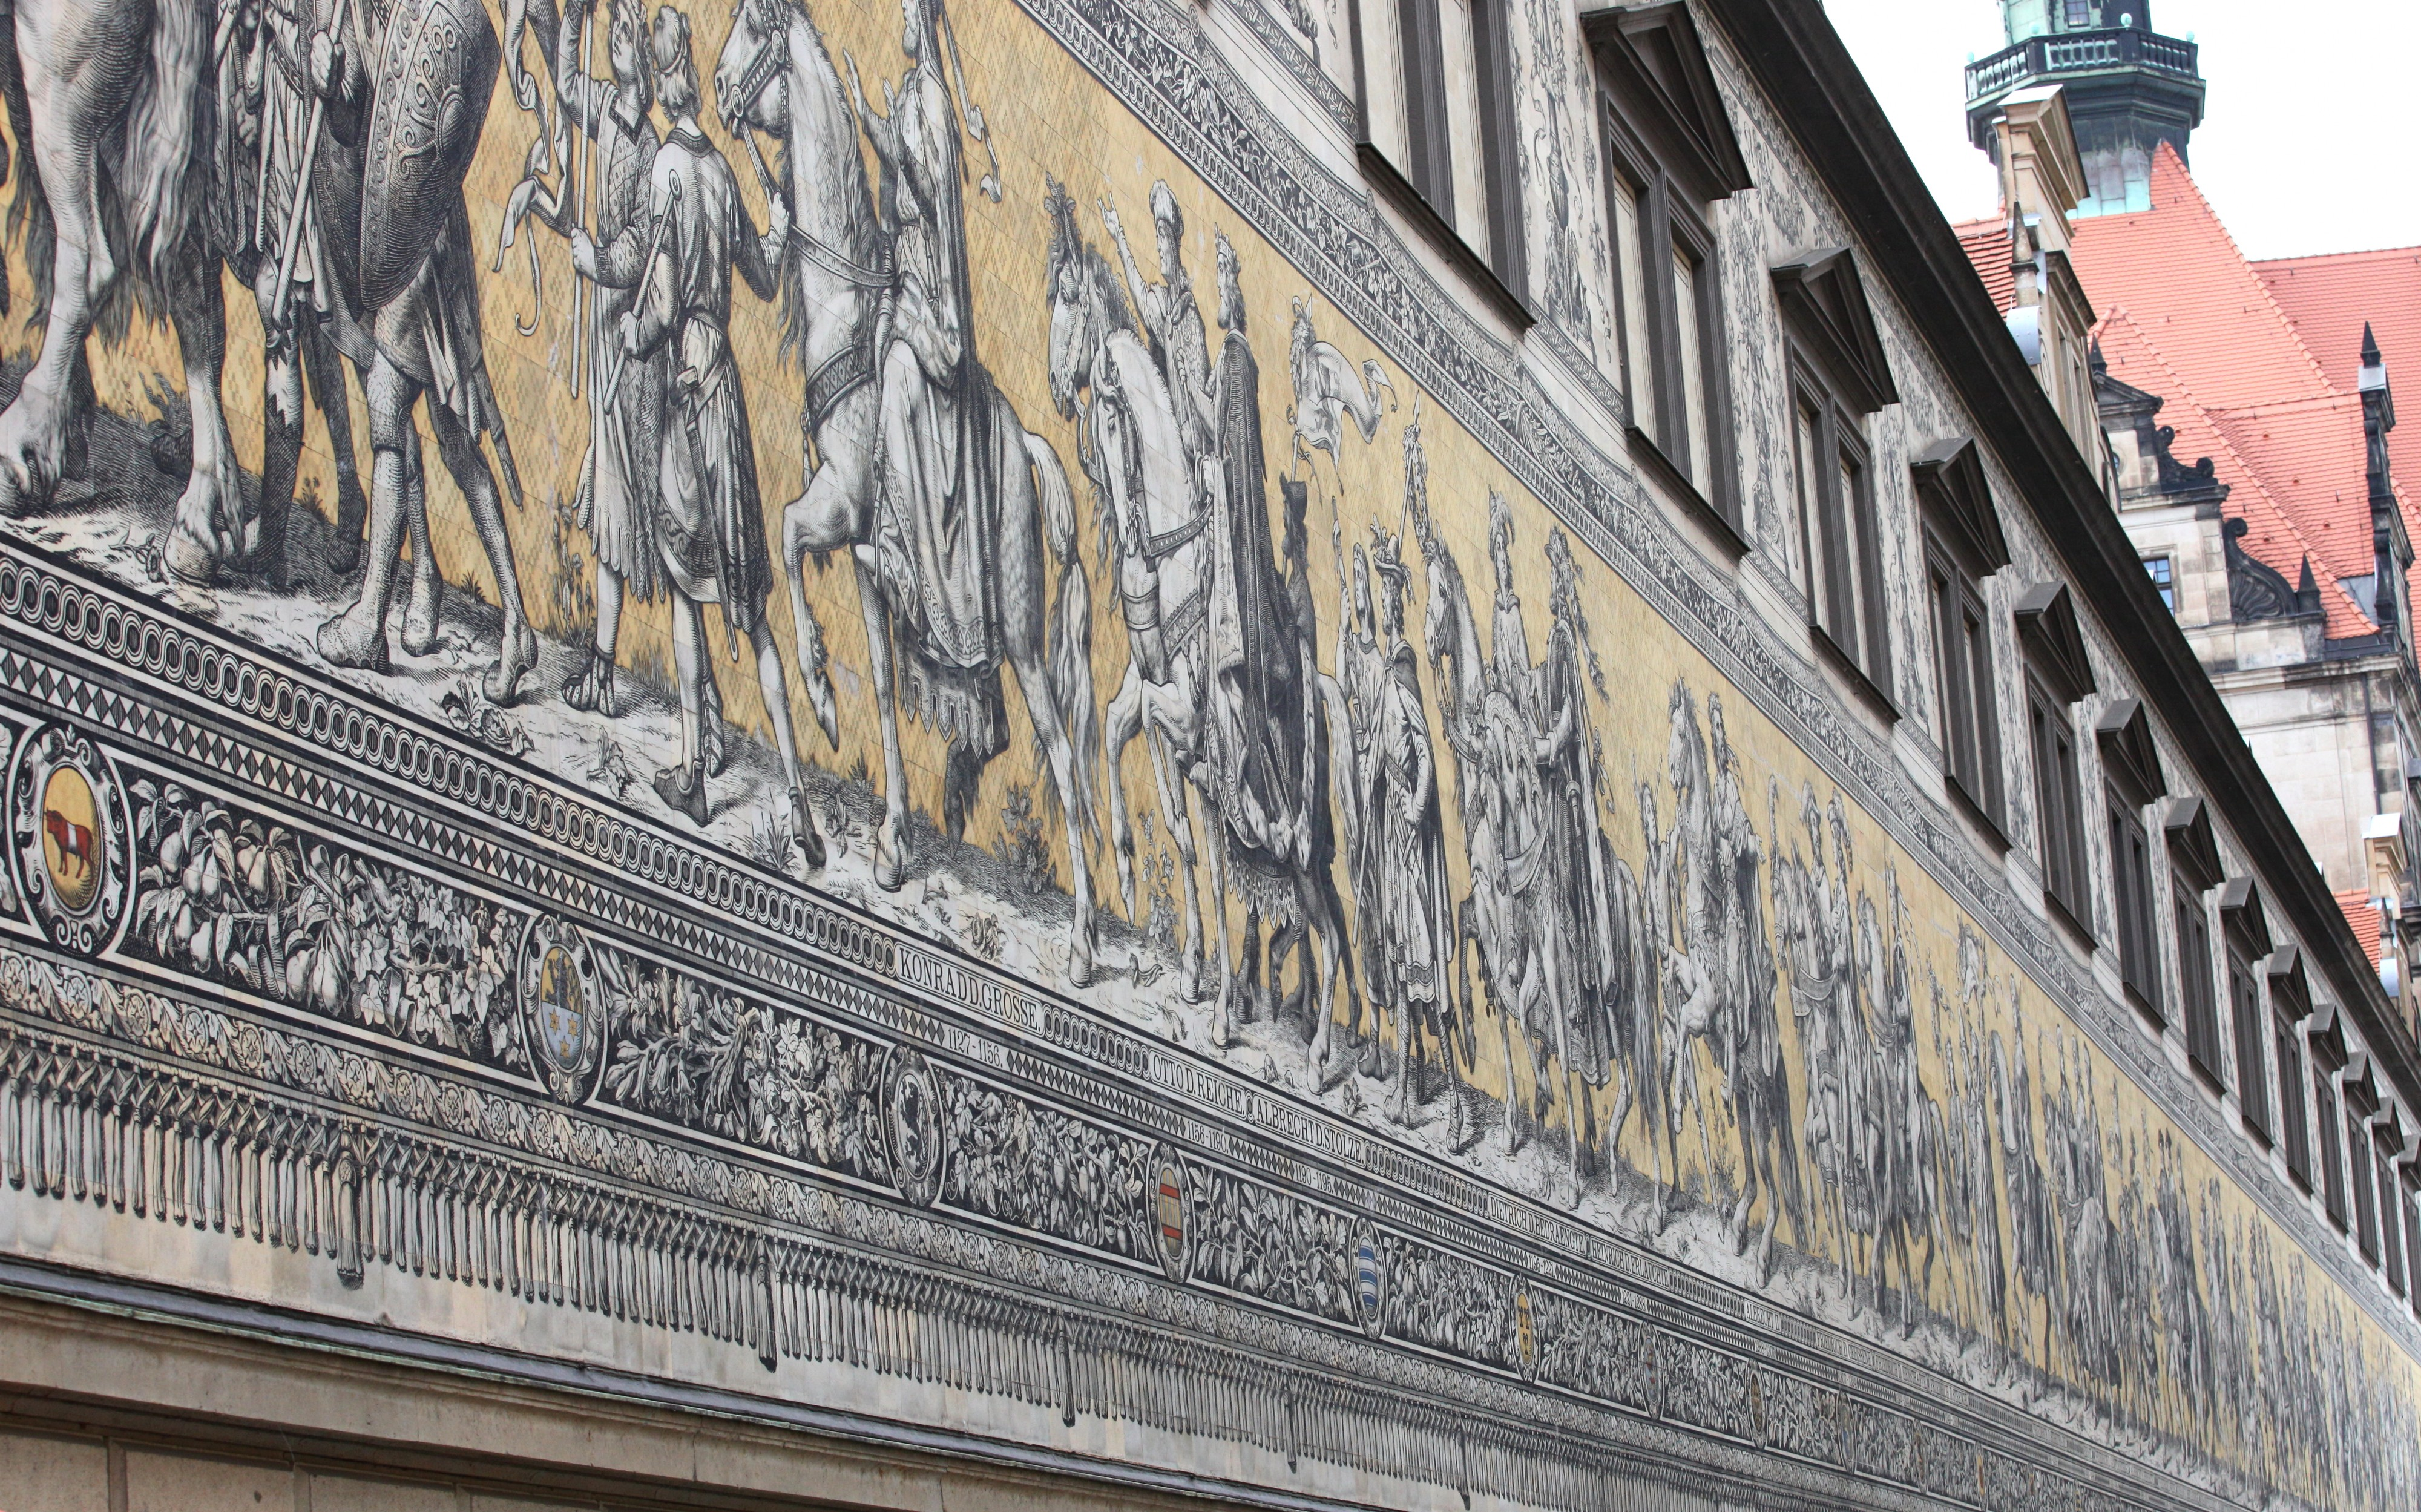 a mural in Dresden, Germany, Europe, August 2013, picture 42